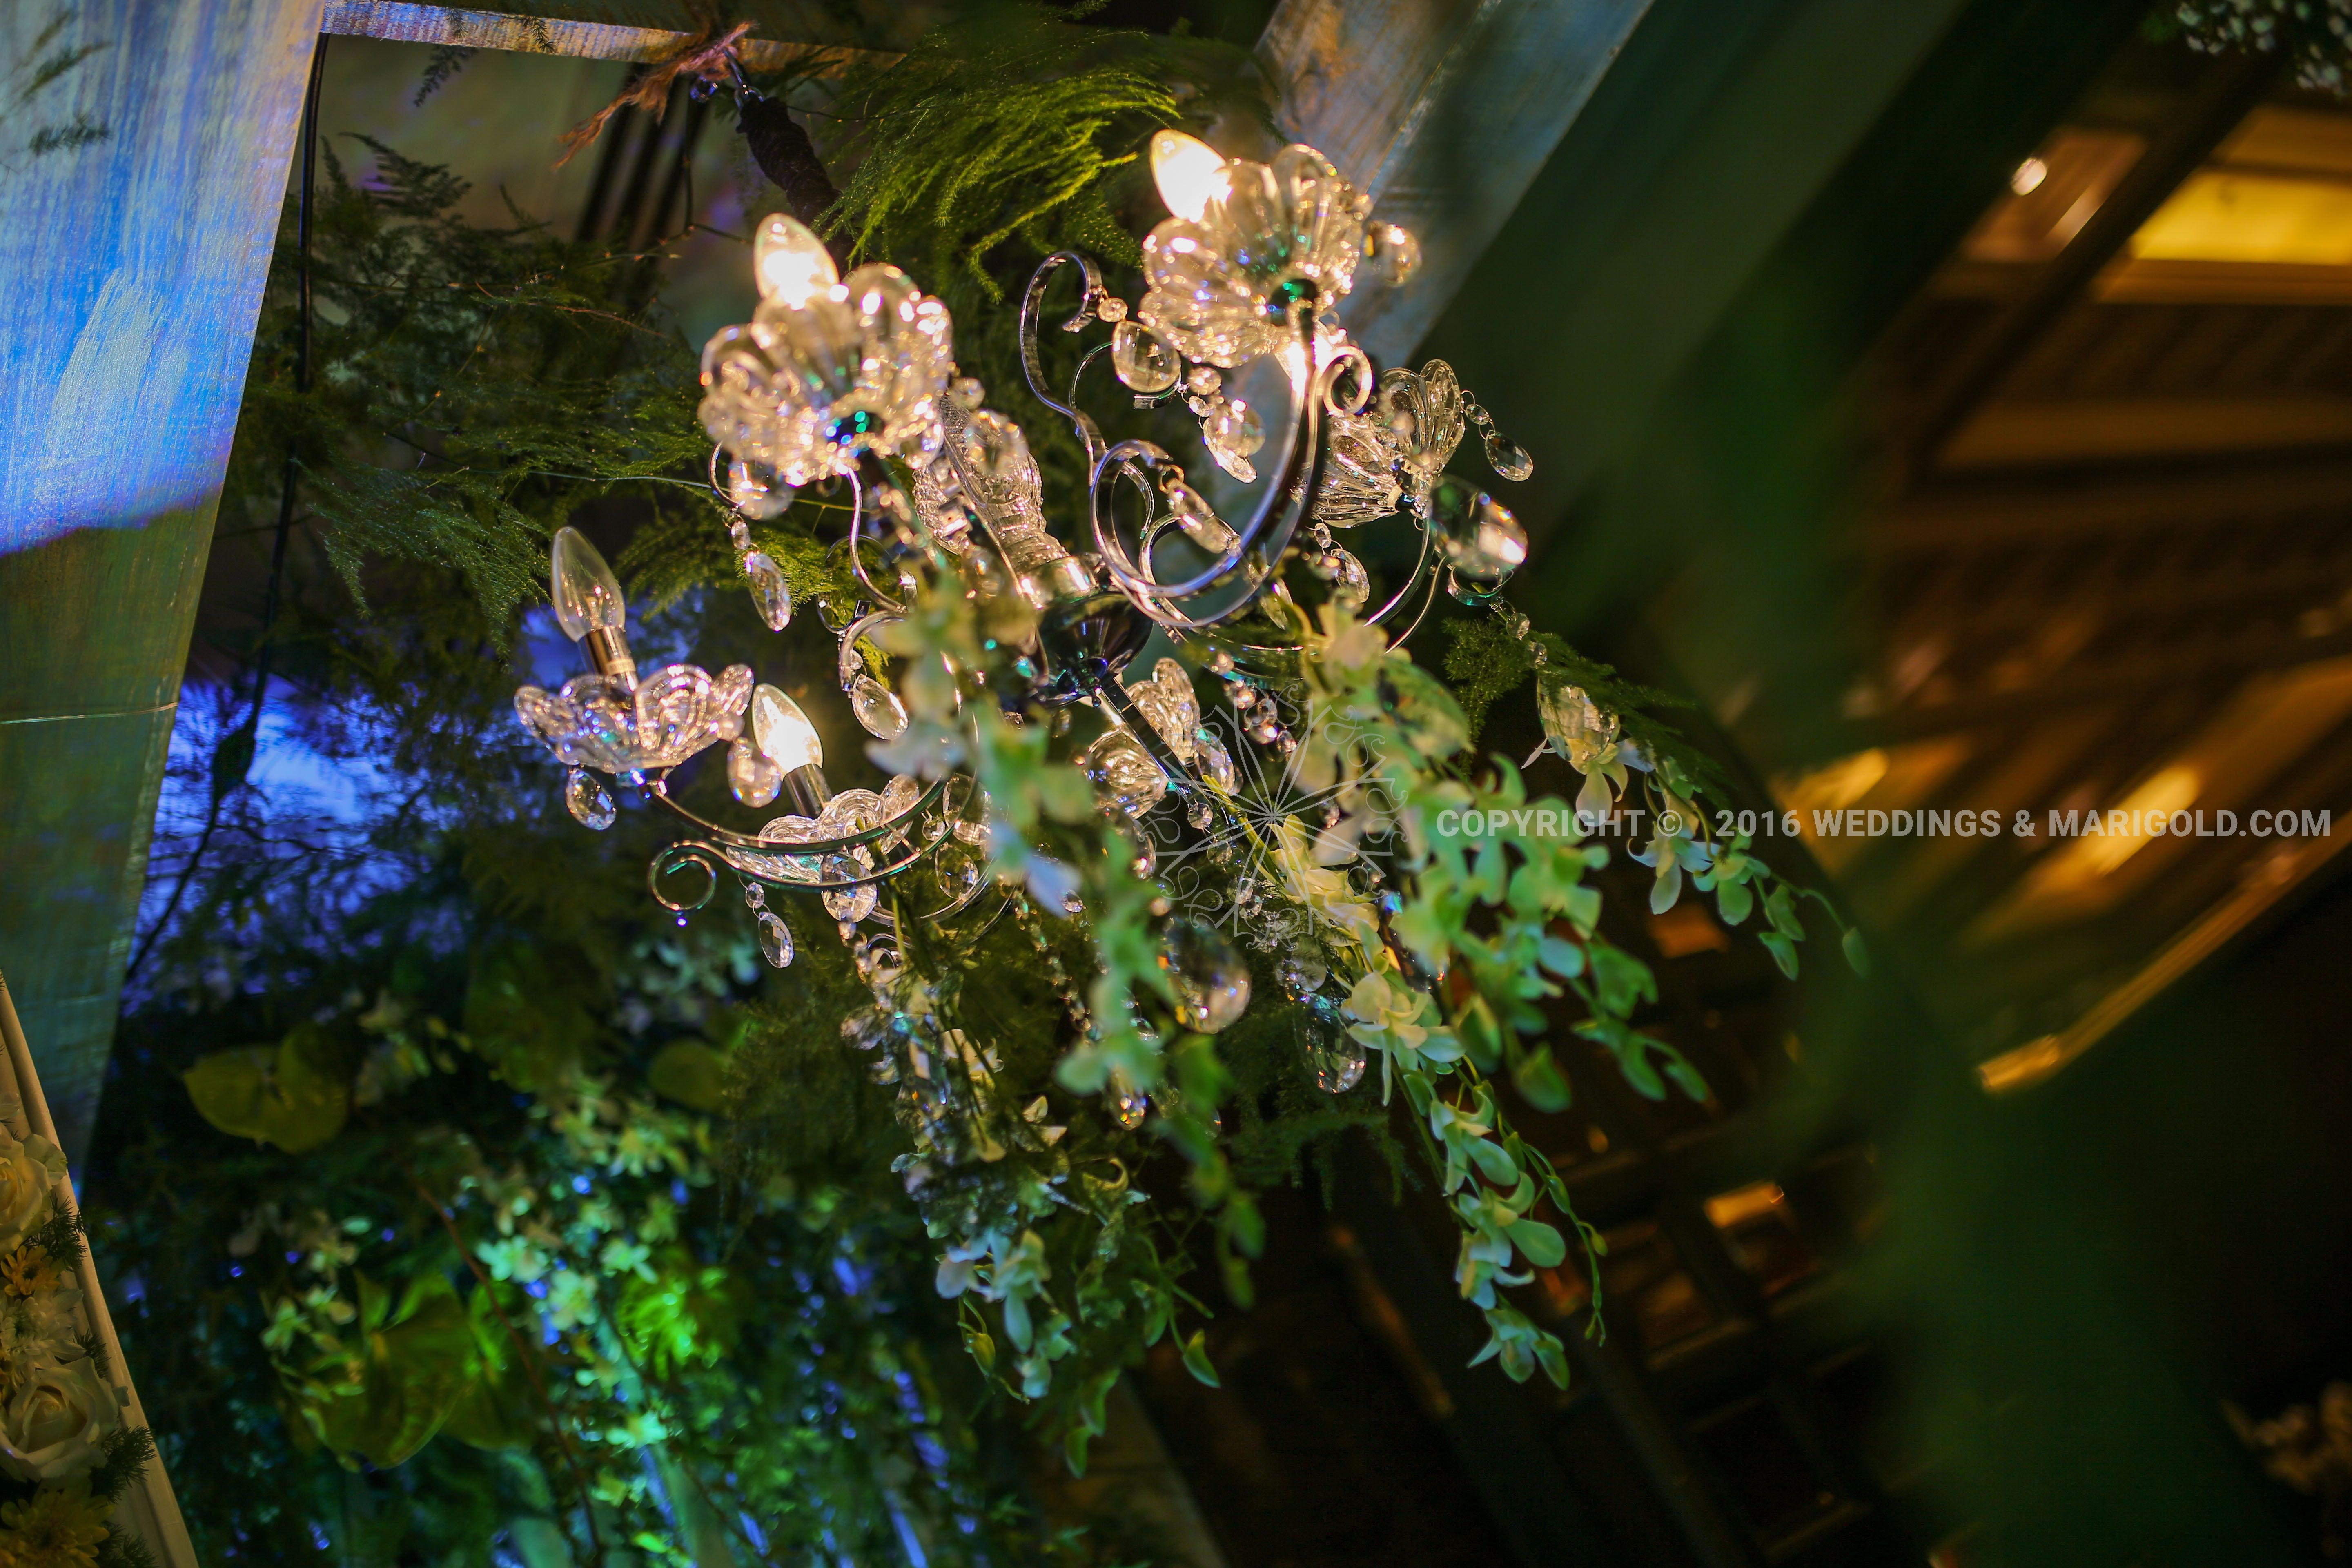 Chandelier detail with hanging green orchid strands